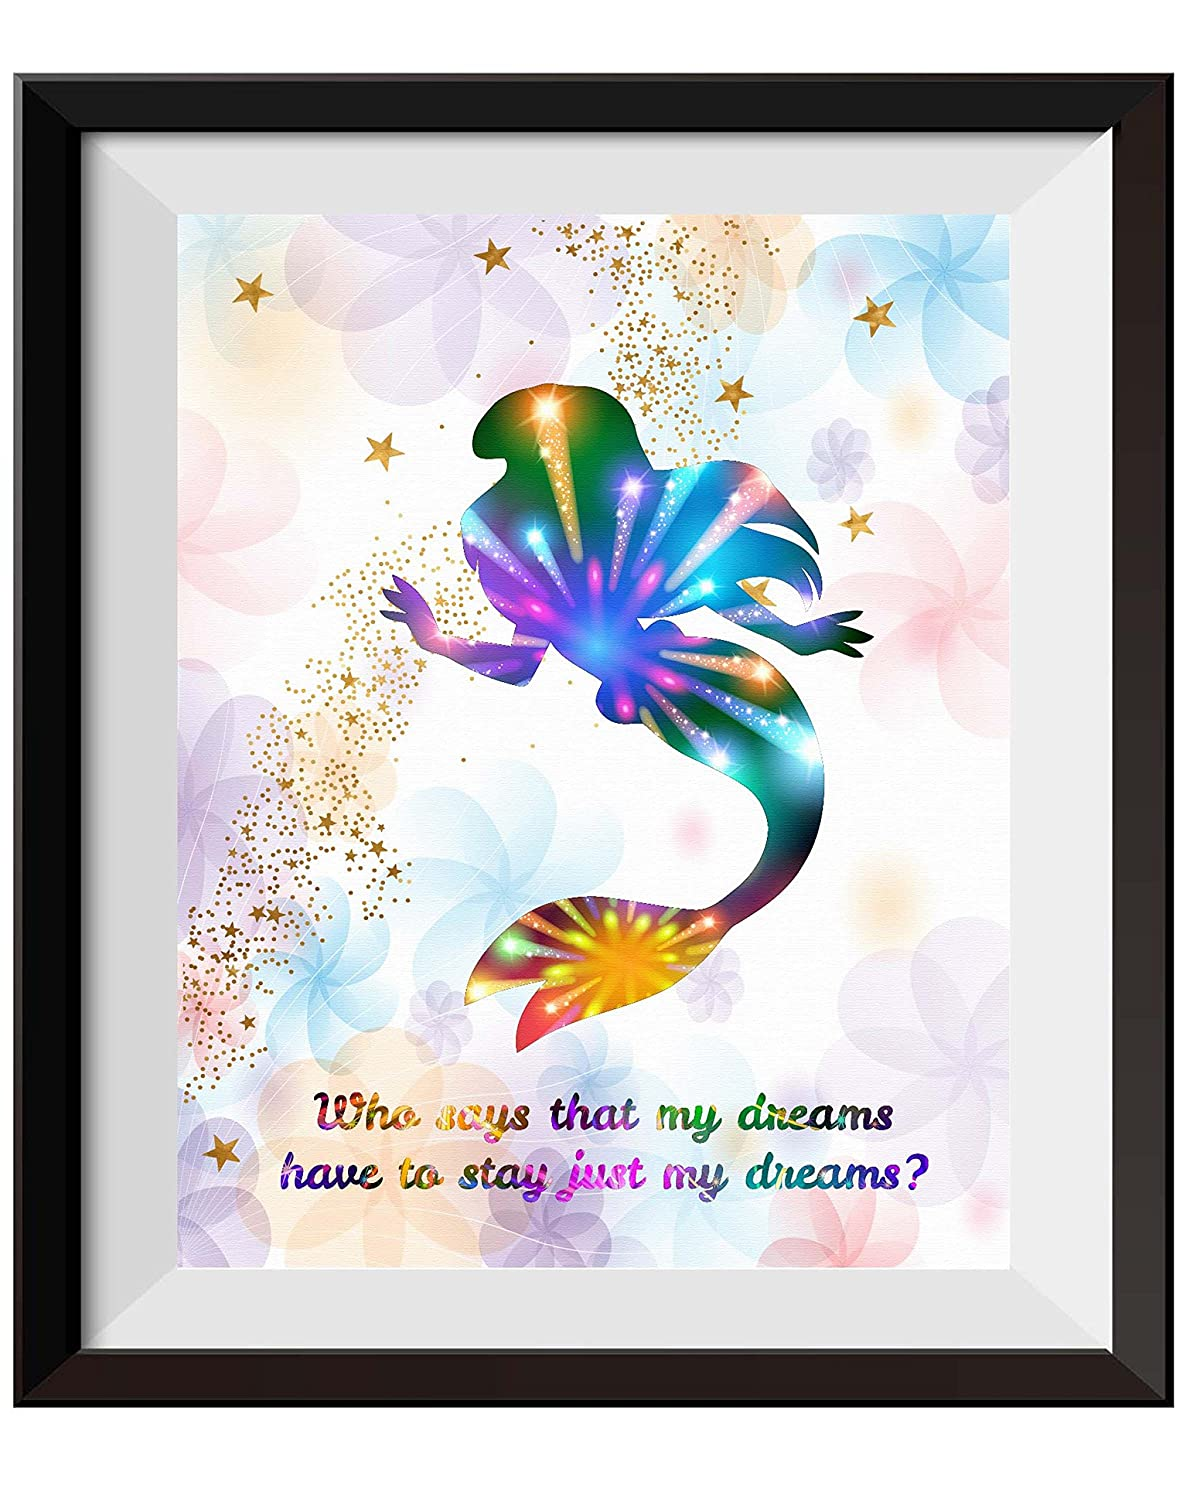 11X14 Uhomate Princess Ariel The Little Mermaid Home Canvas Prints Wall Art Anniversary Gifts Baby Gift Inspirational Quotes Wall Decor Living Room Bedroom Bathroom Artwork C075